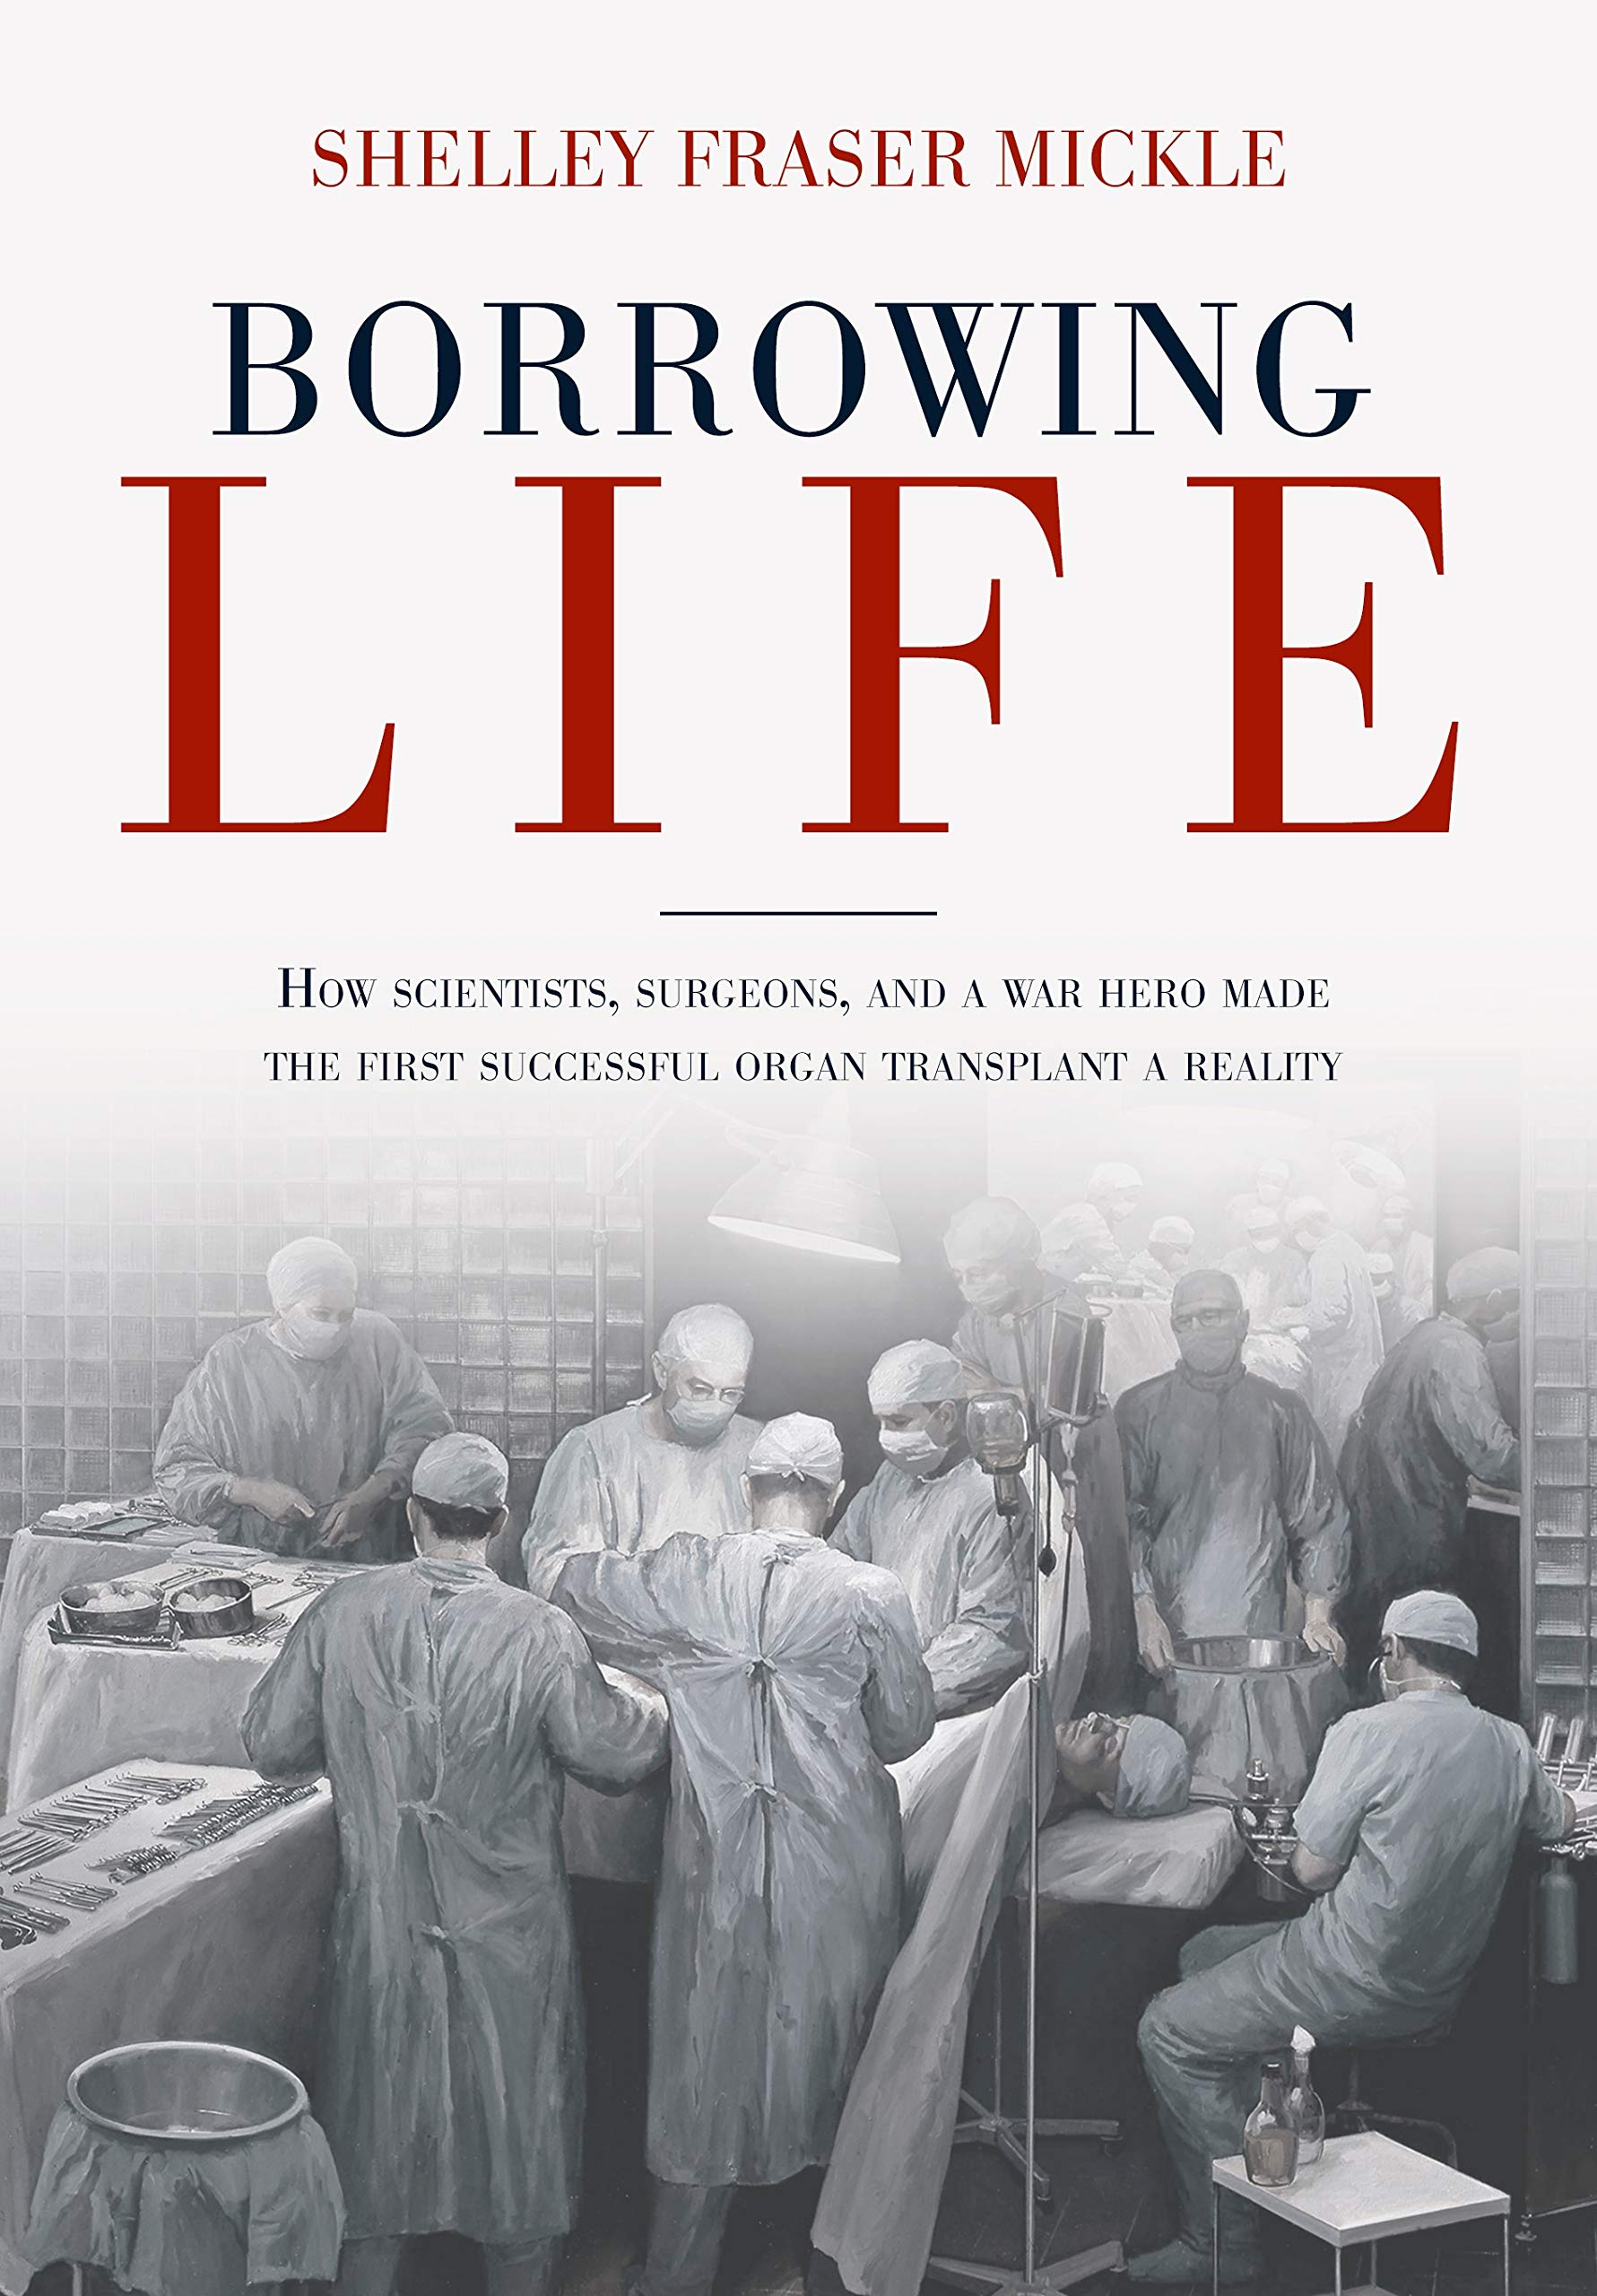 Download Borrowing Life: How Scientists, Surgeons, And A War Hero Made The First Successful Organ Transplant A Reality 